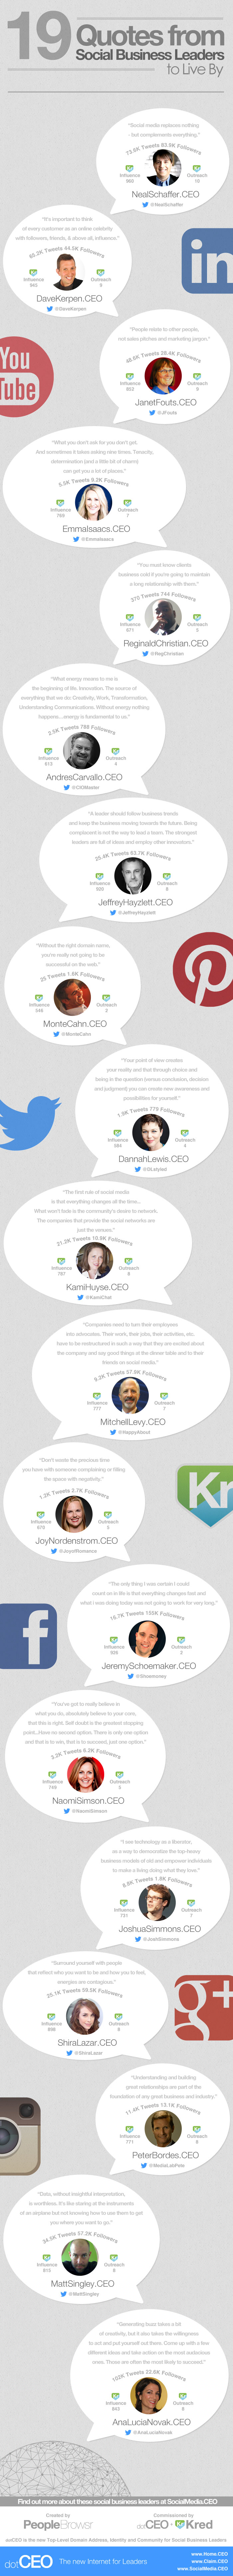 The 19 CEOs in this infographic lead the way on Social Media